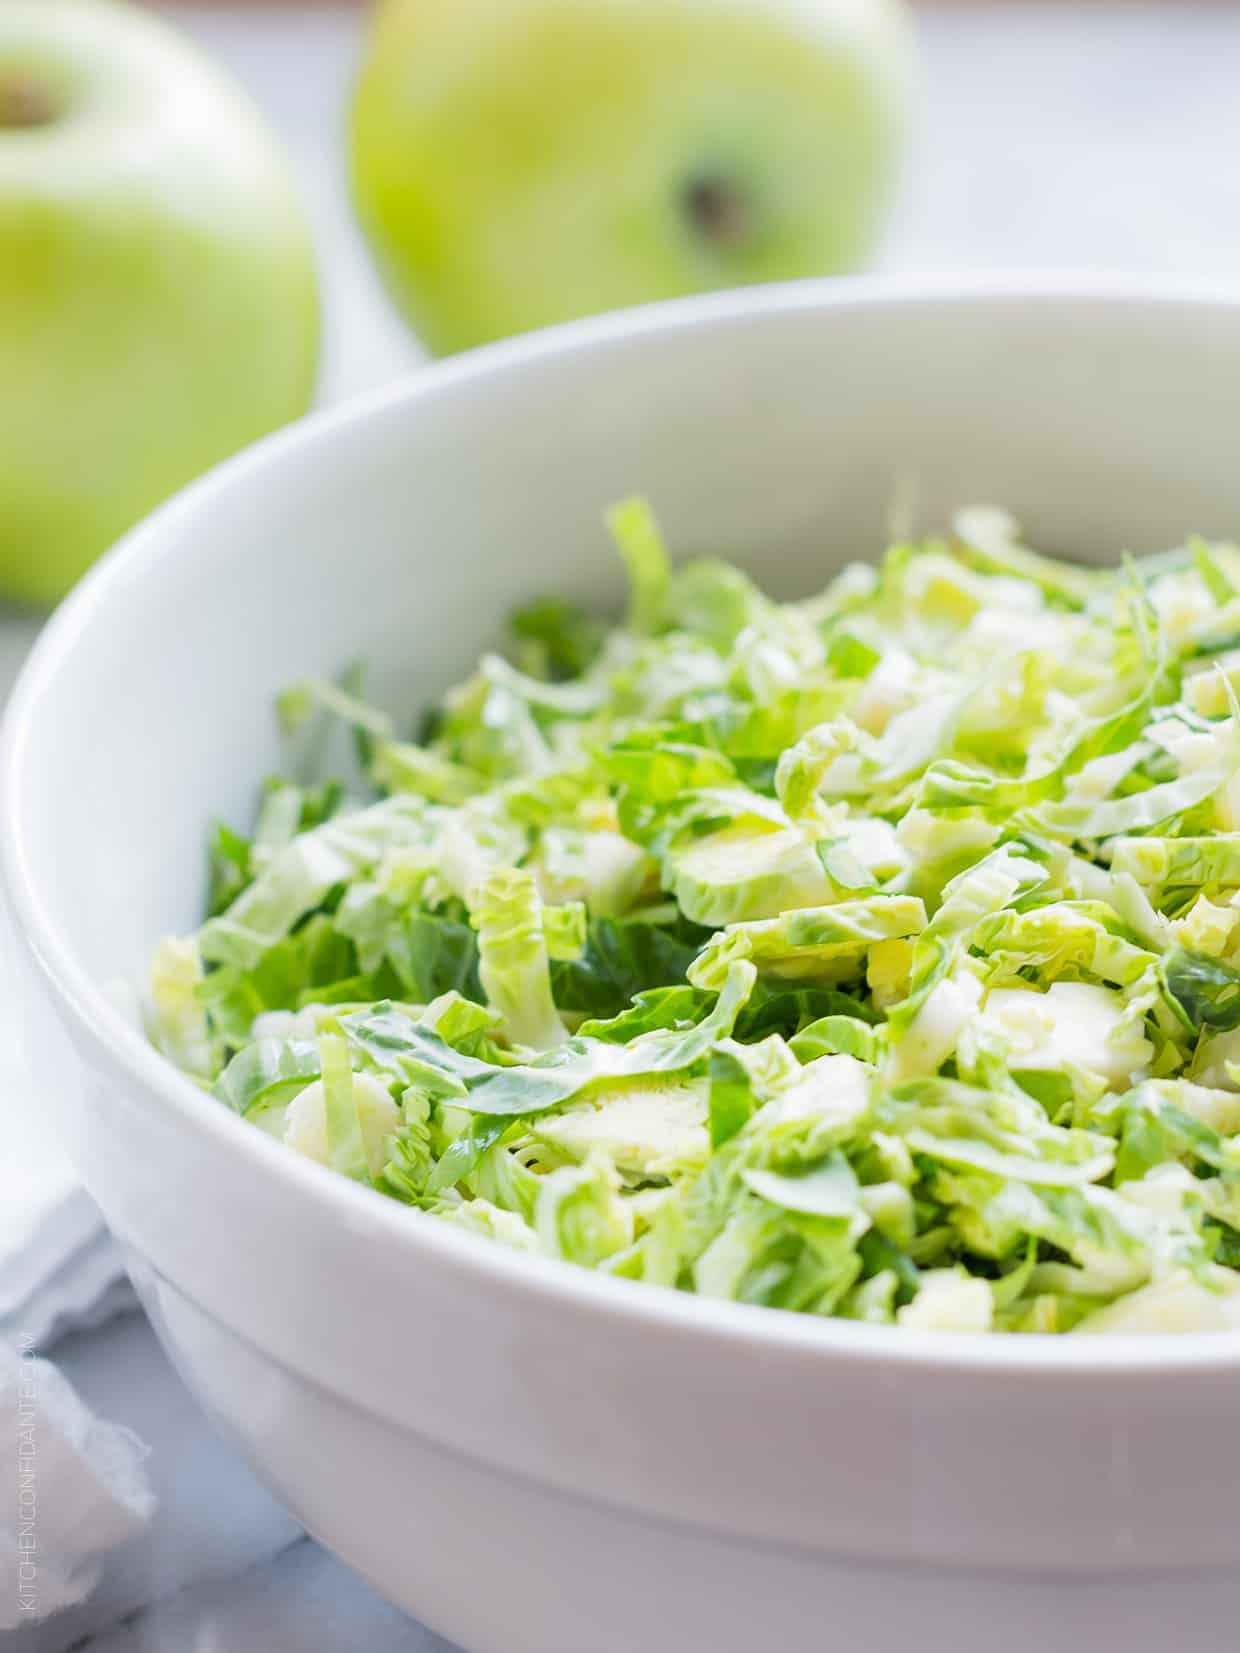 Shredded Brussels sprouts are perfect in a salad.